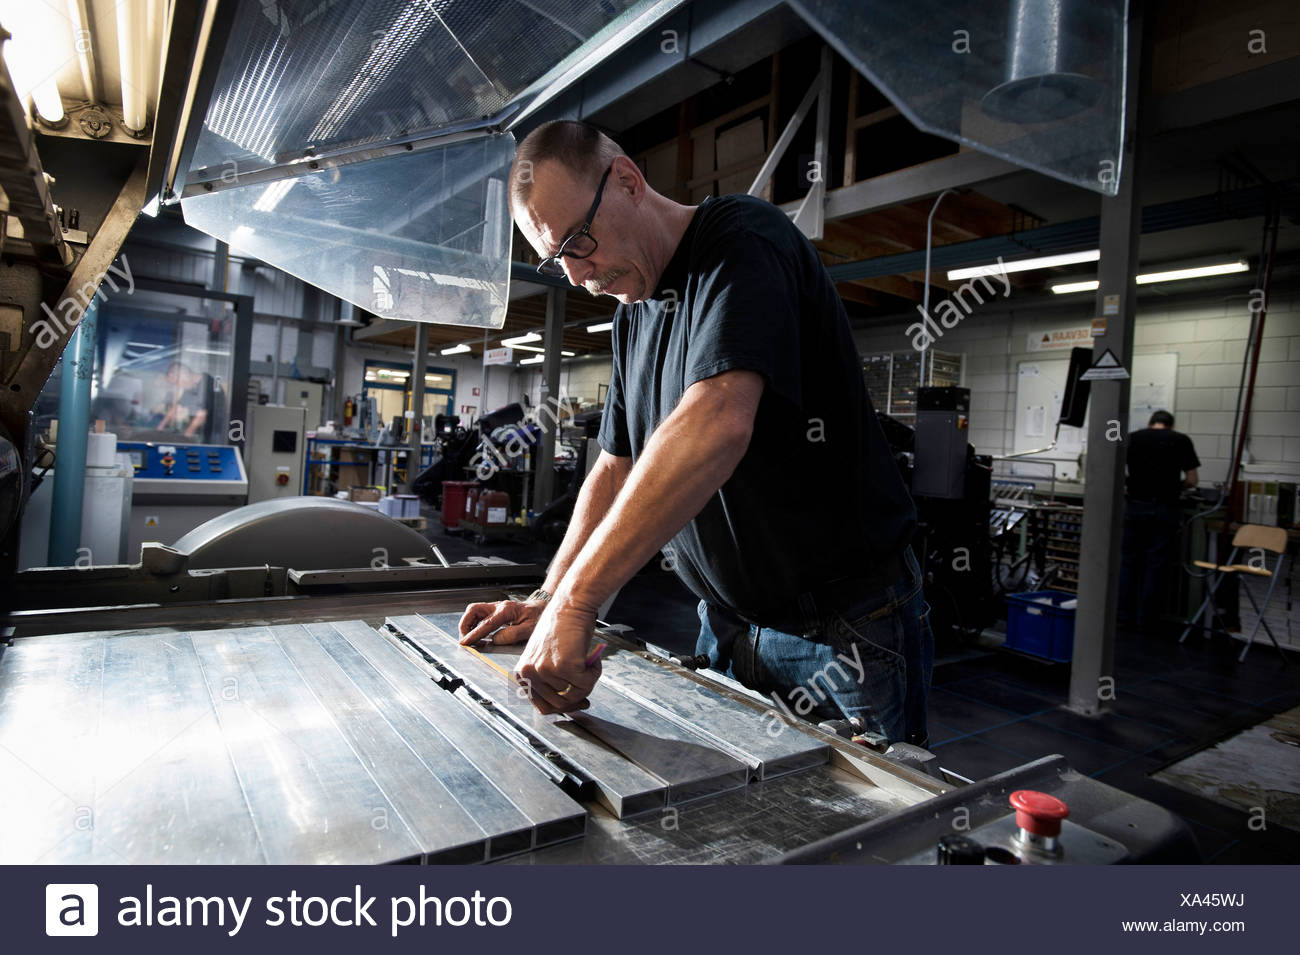 Worker servicing print machine in printing workshop - Stock Image